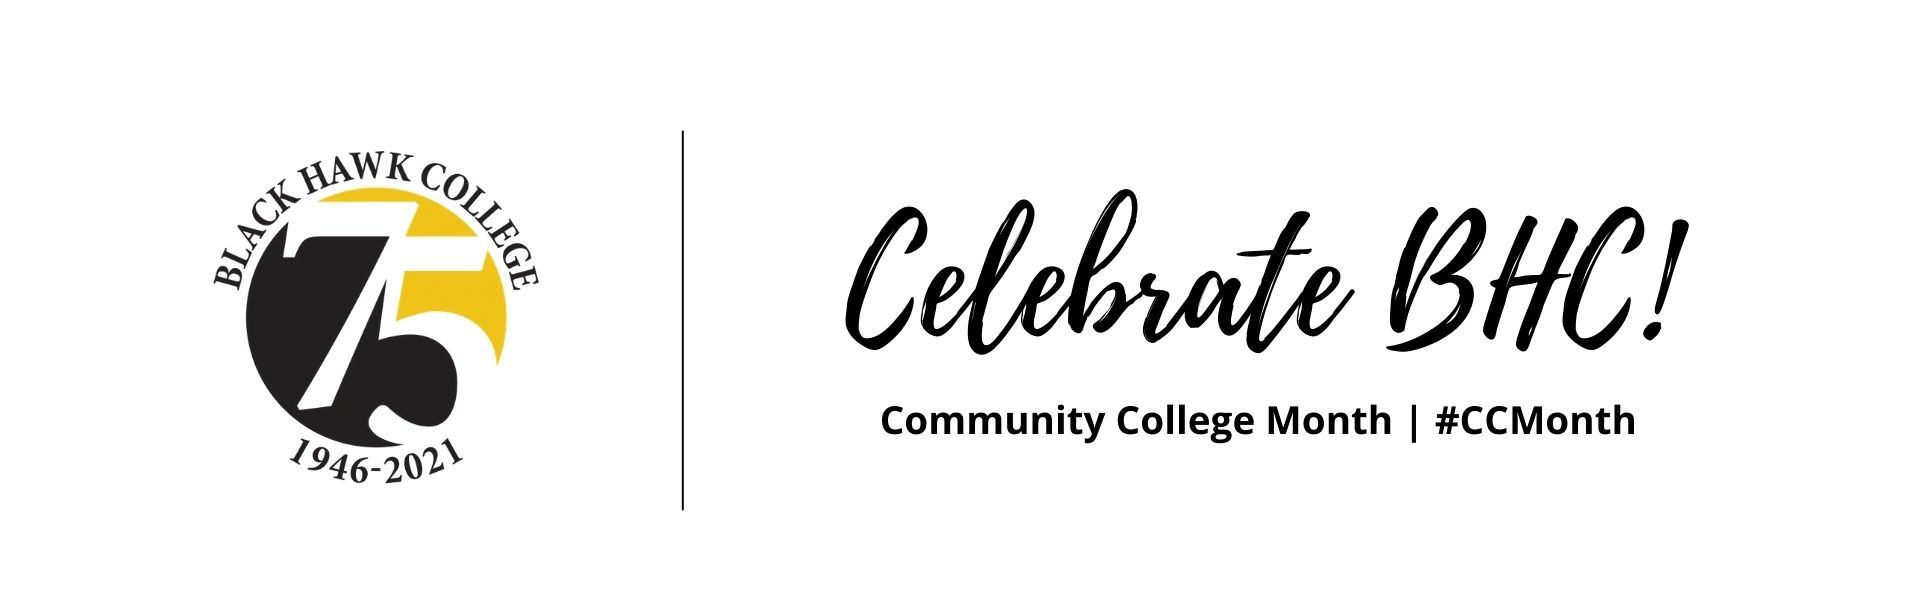 Celebrate BHC during Community College Month